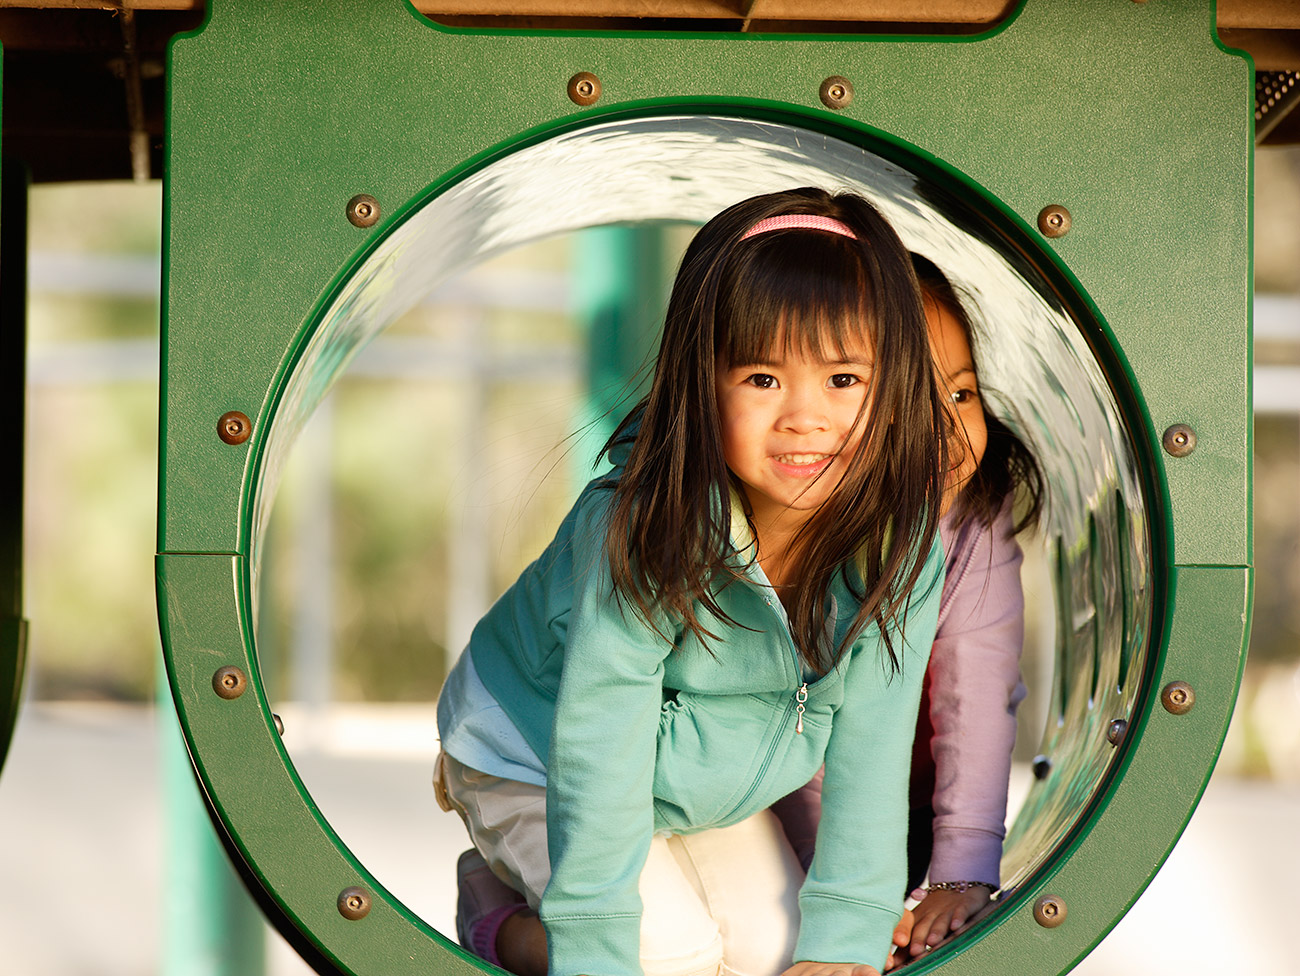 Grammar school aged Asian girl playing on a jungle gym in a park.